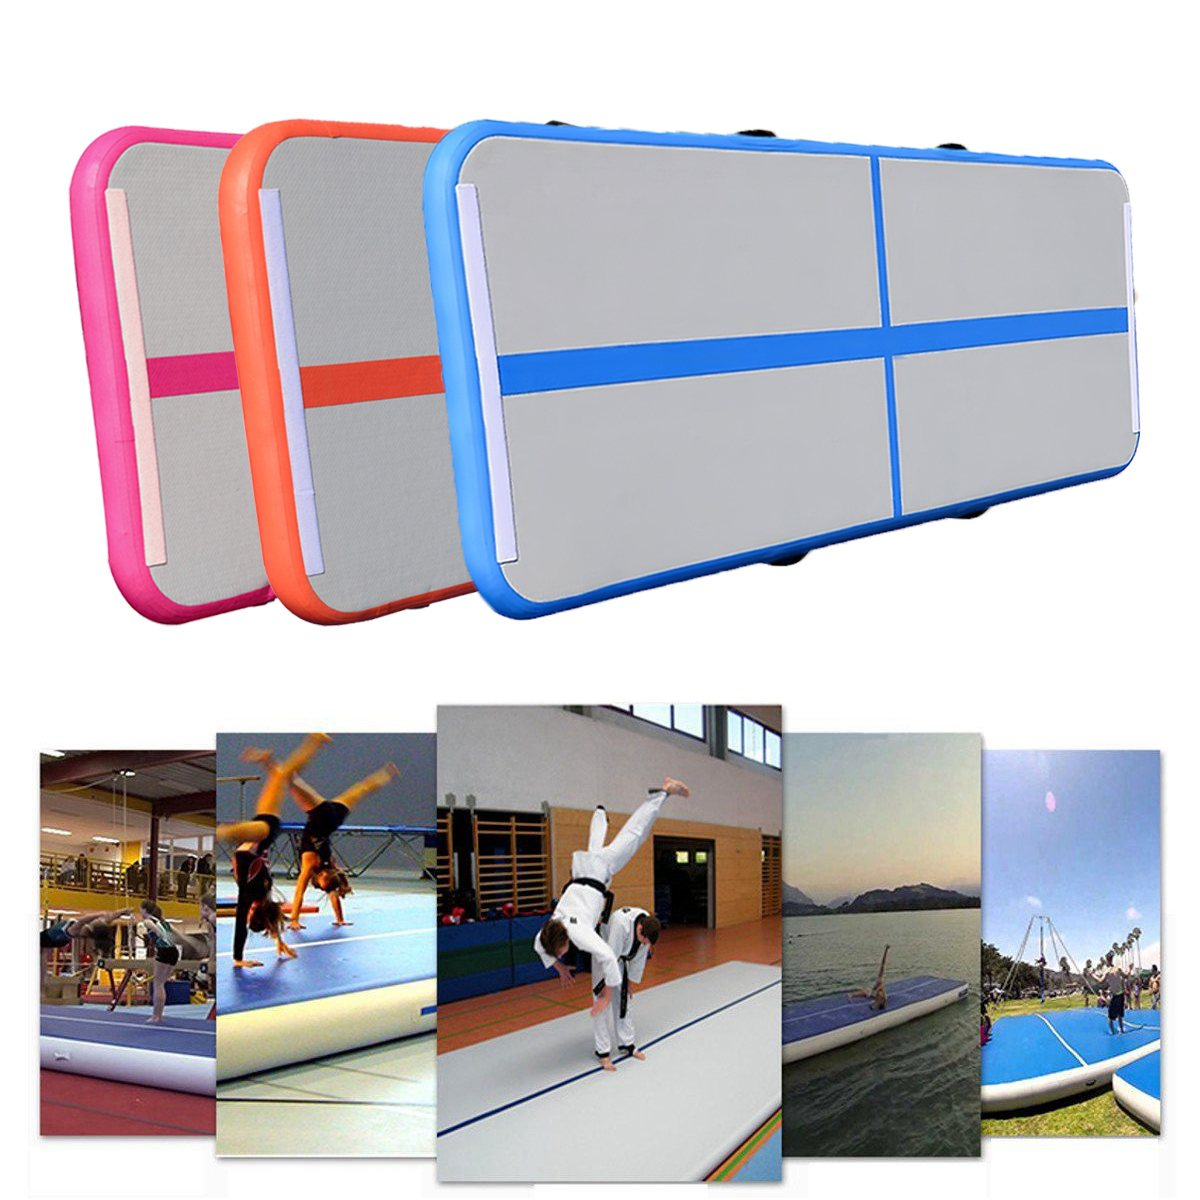 Newest Sport Portable 0.5*3m Inflatable Tumble Track Trampoline Air Track Taekwondo Gymnastics Inflatable Air Mat free shipping 6 2m inflatable tumble track trampoline air track gymnastics inflatable air mat come with a pump